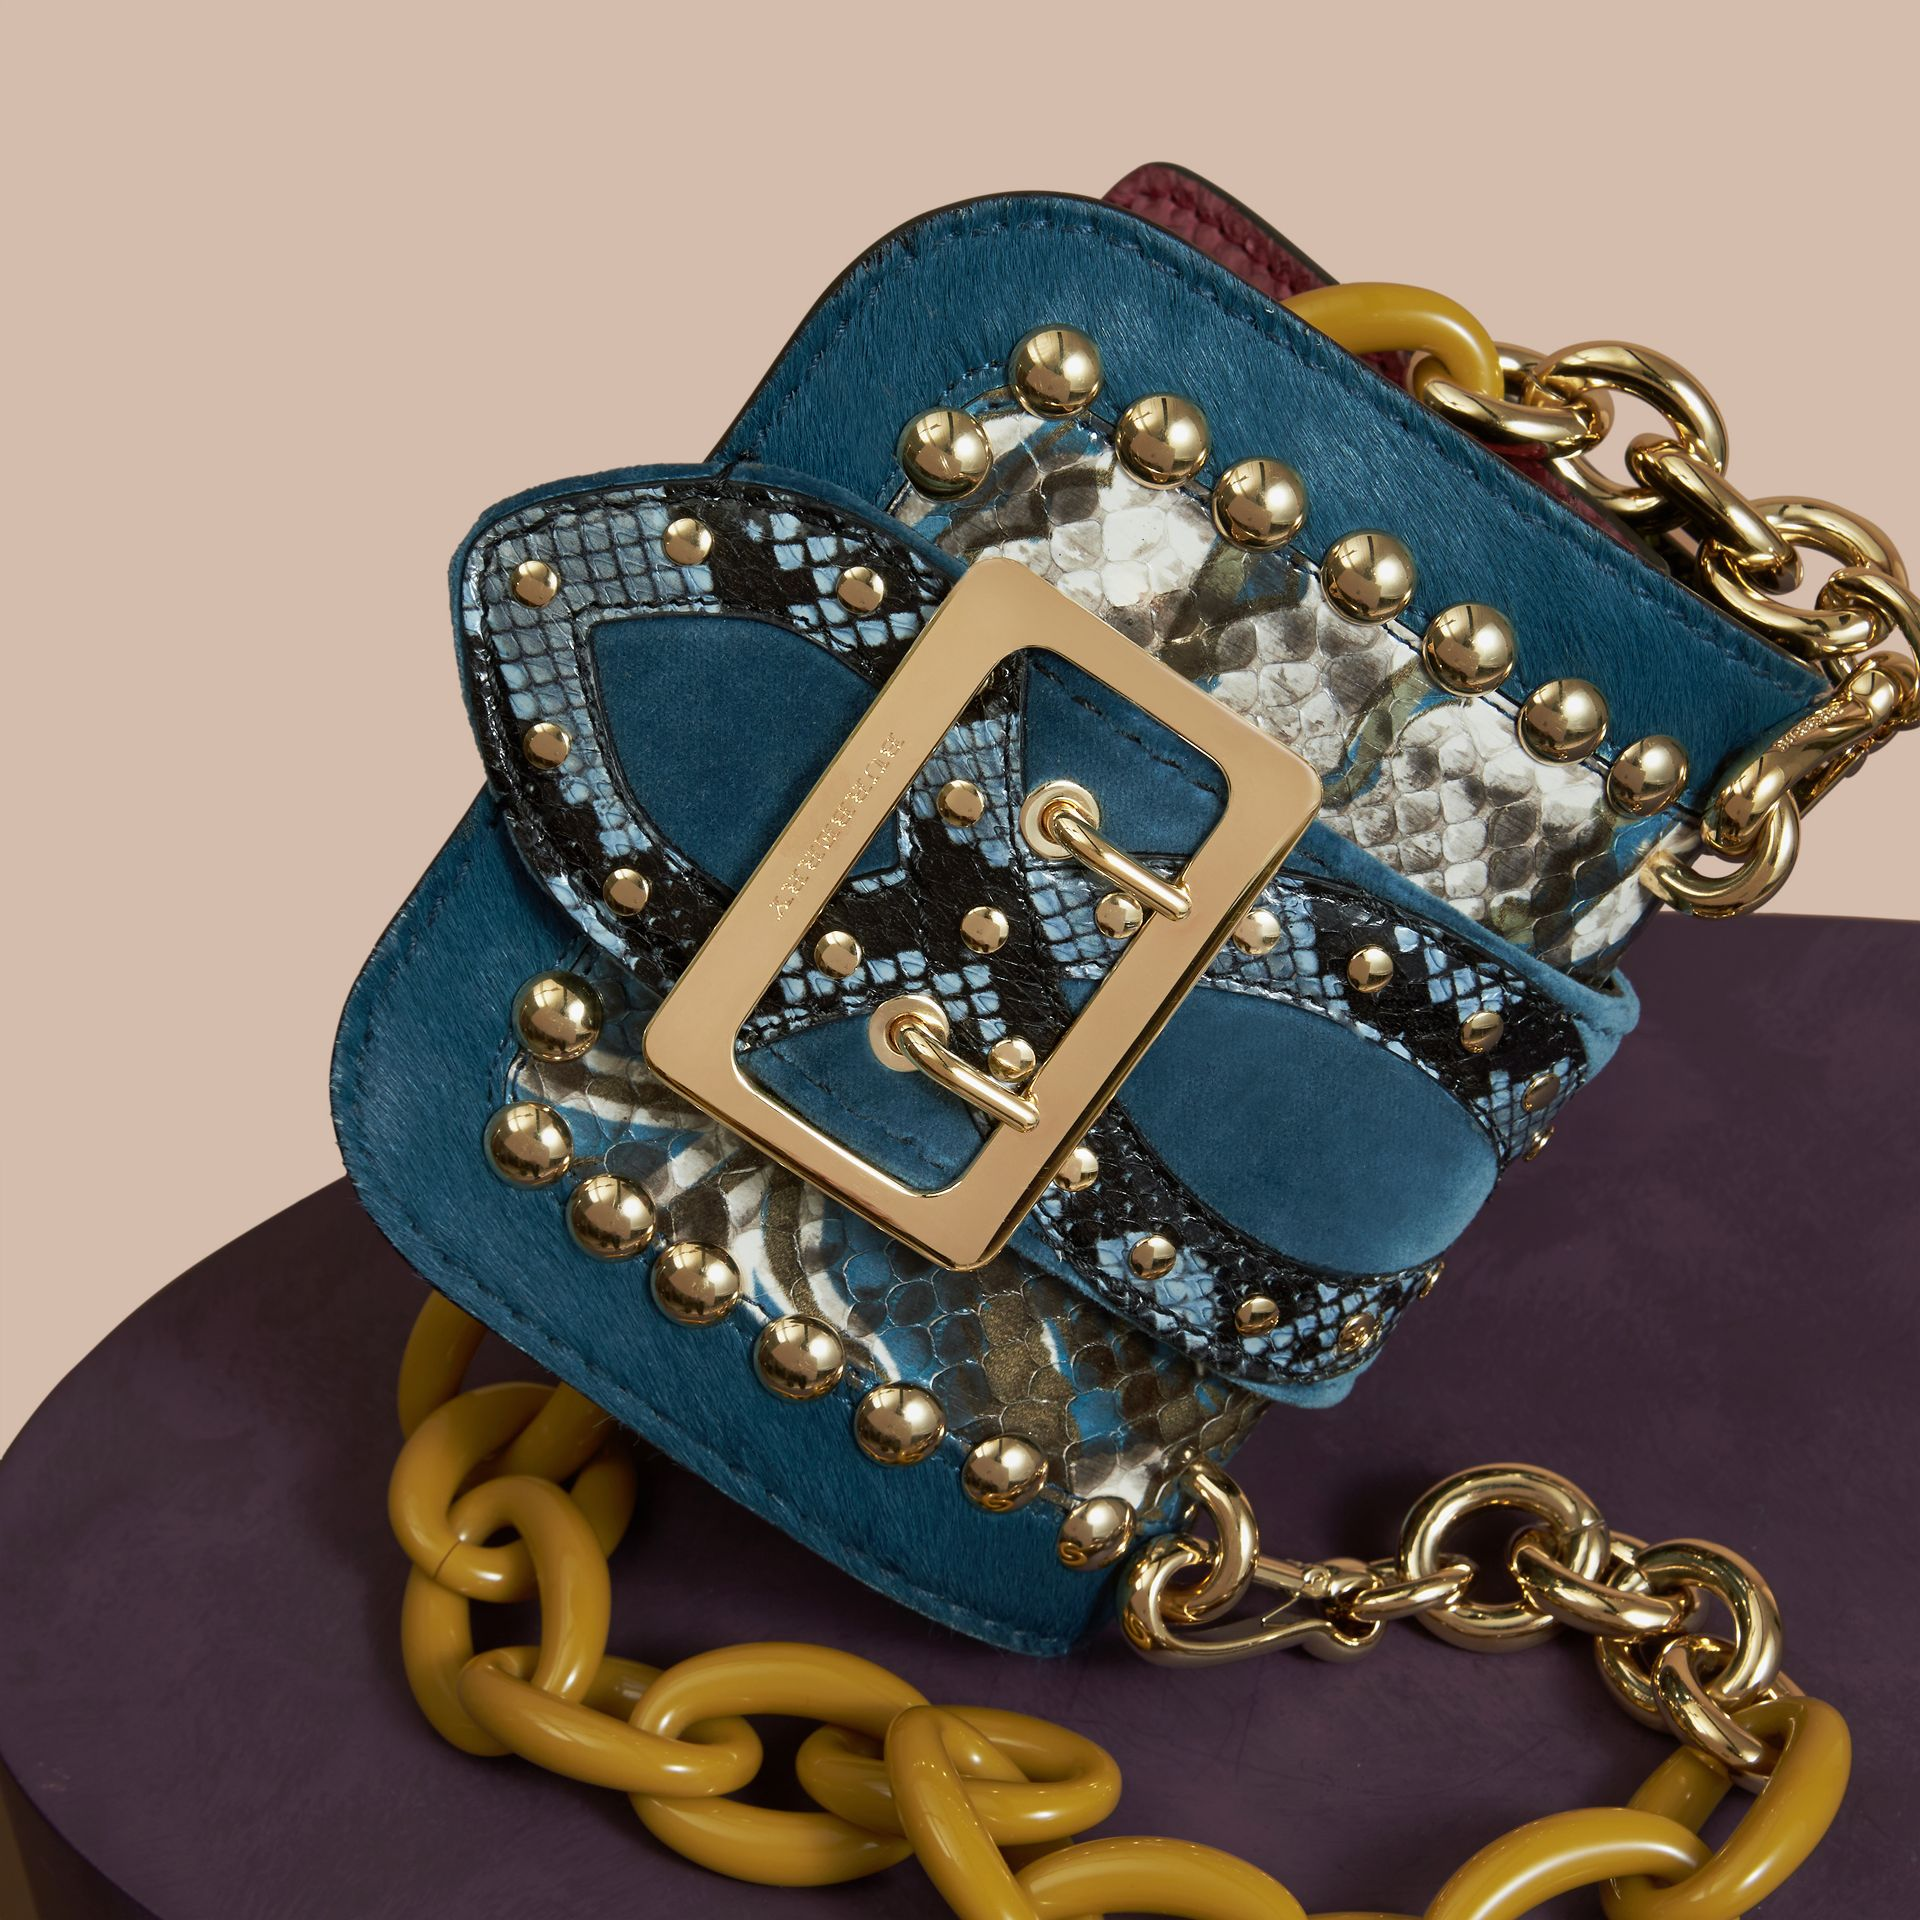 Pale opal The Mini Square Buckle Bag in Calfskin, Snakeskin and Velvet Pale Opal - gallery image 6